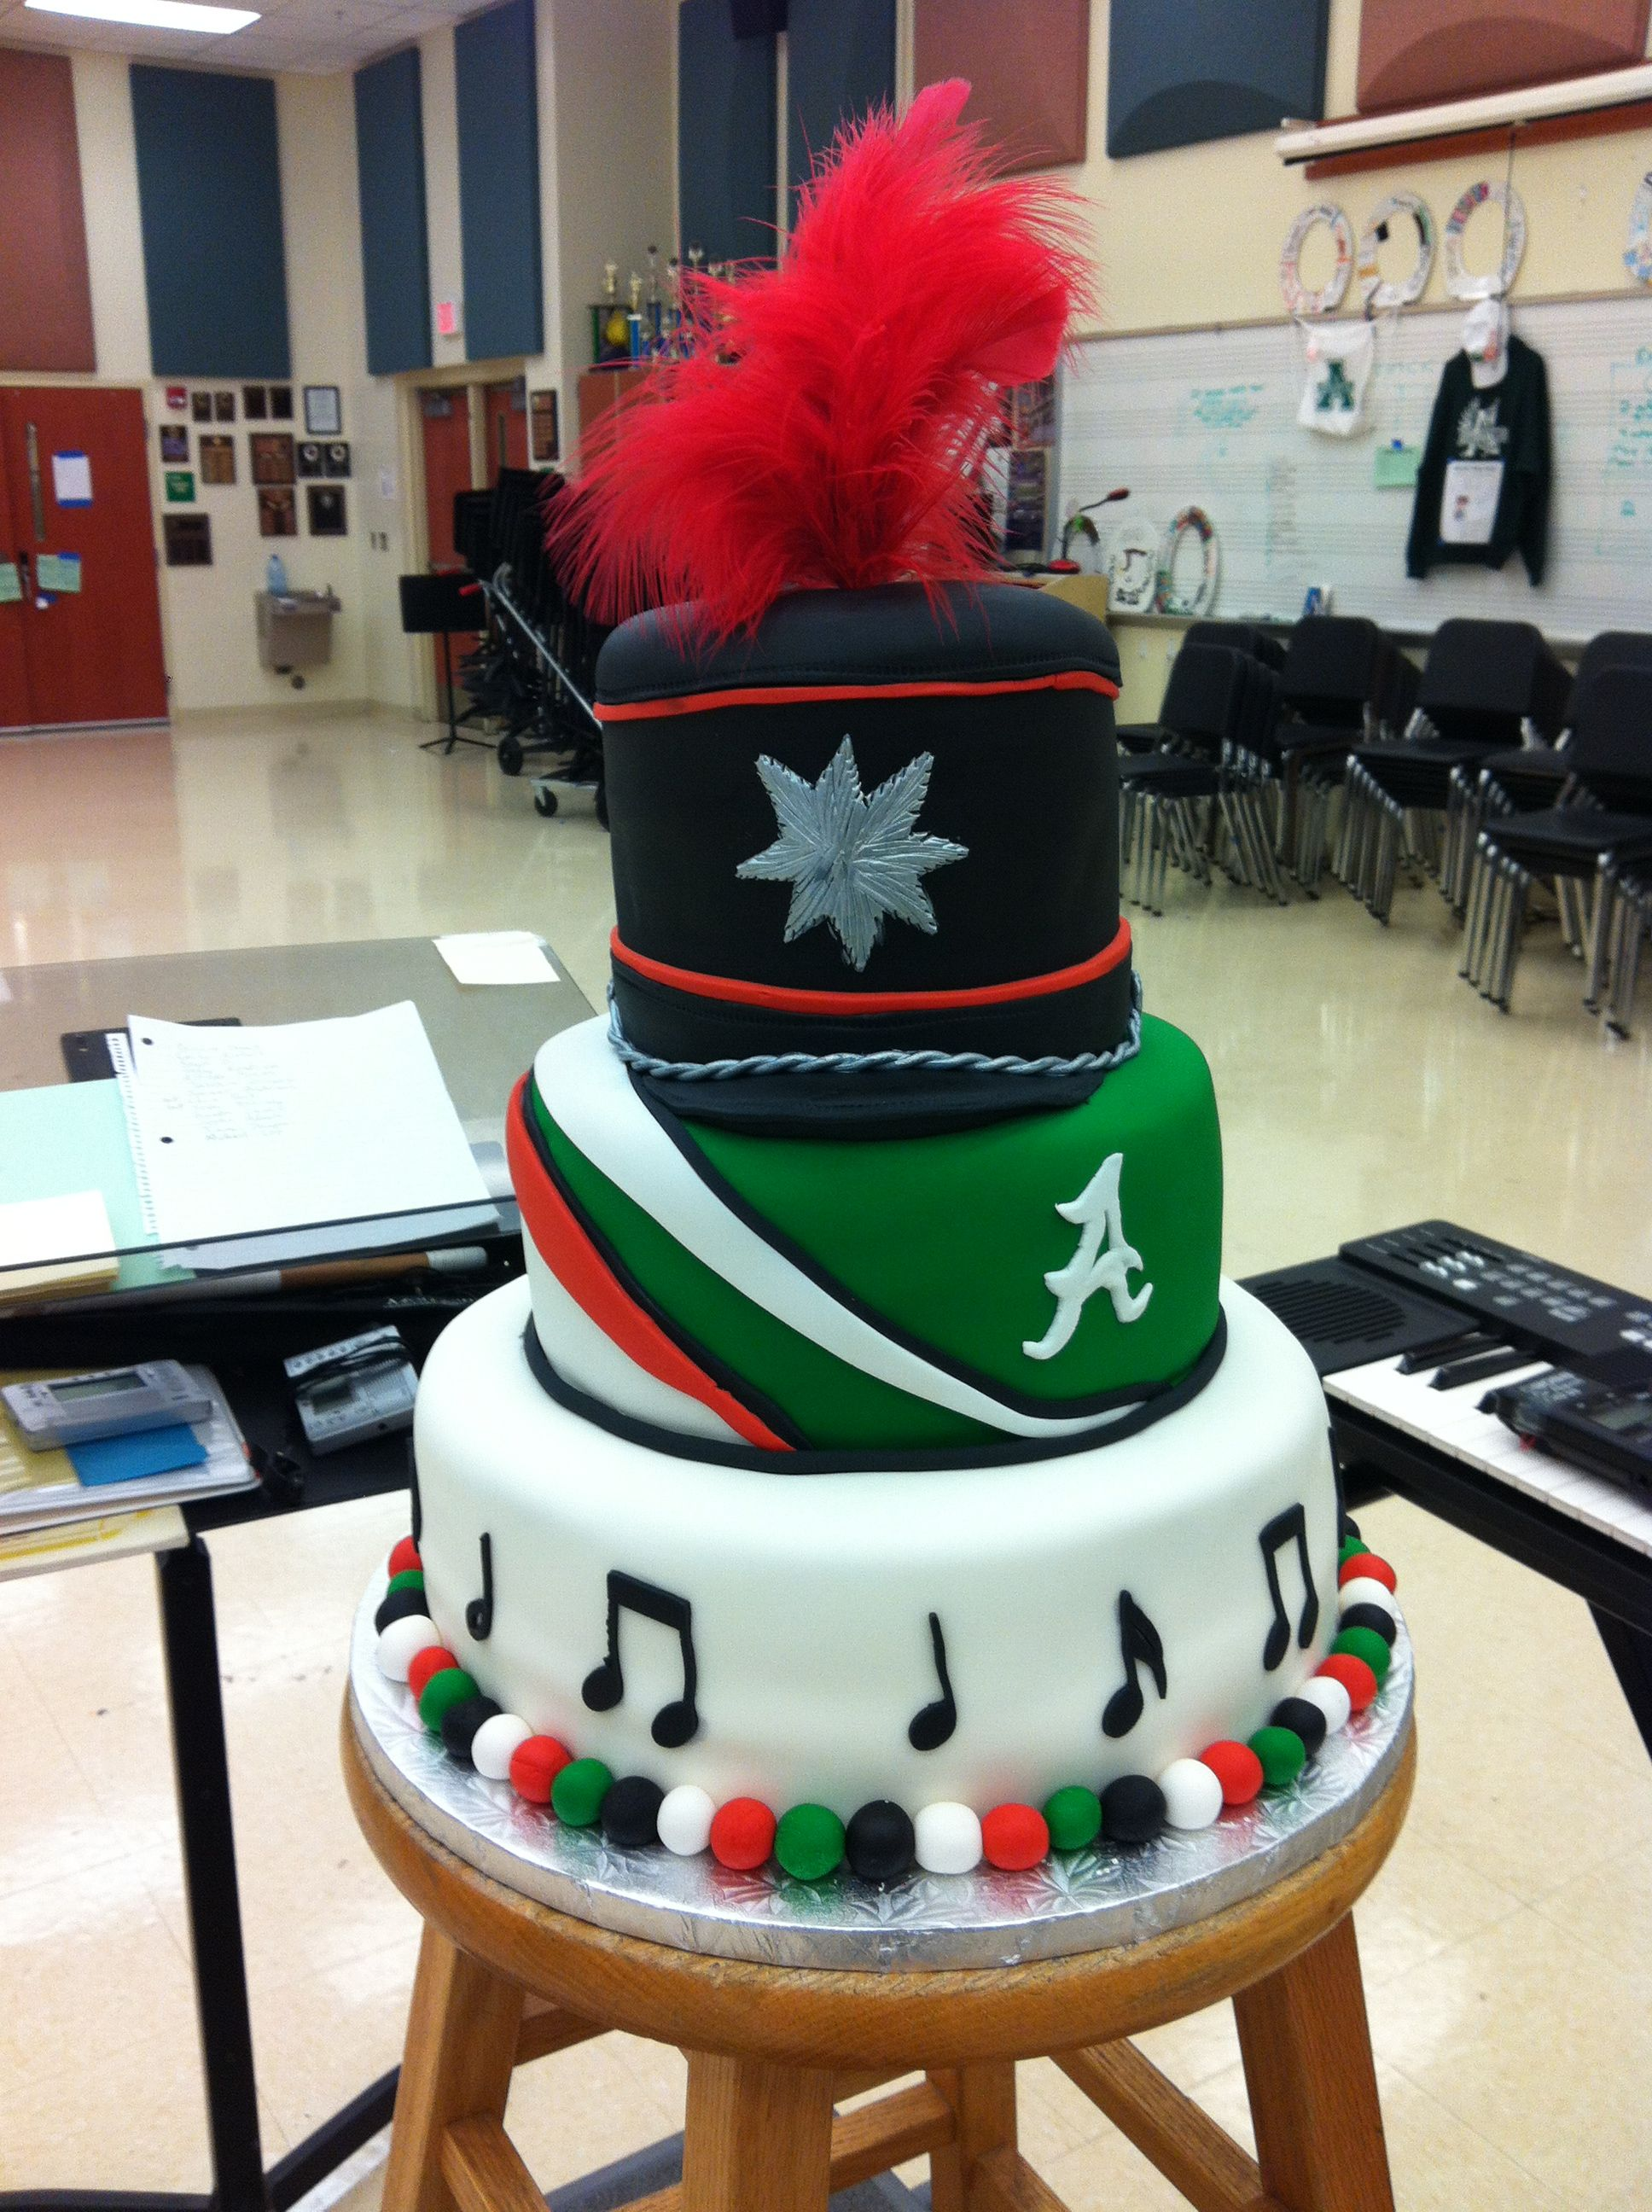 Marching Band Cake With Images Marching Band Cake Cake Band